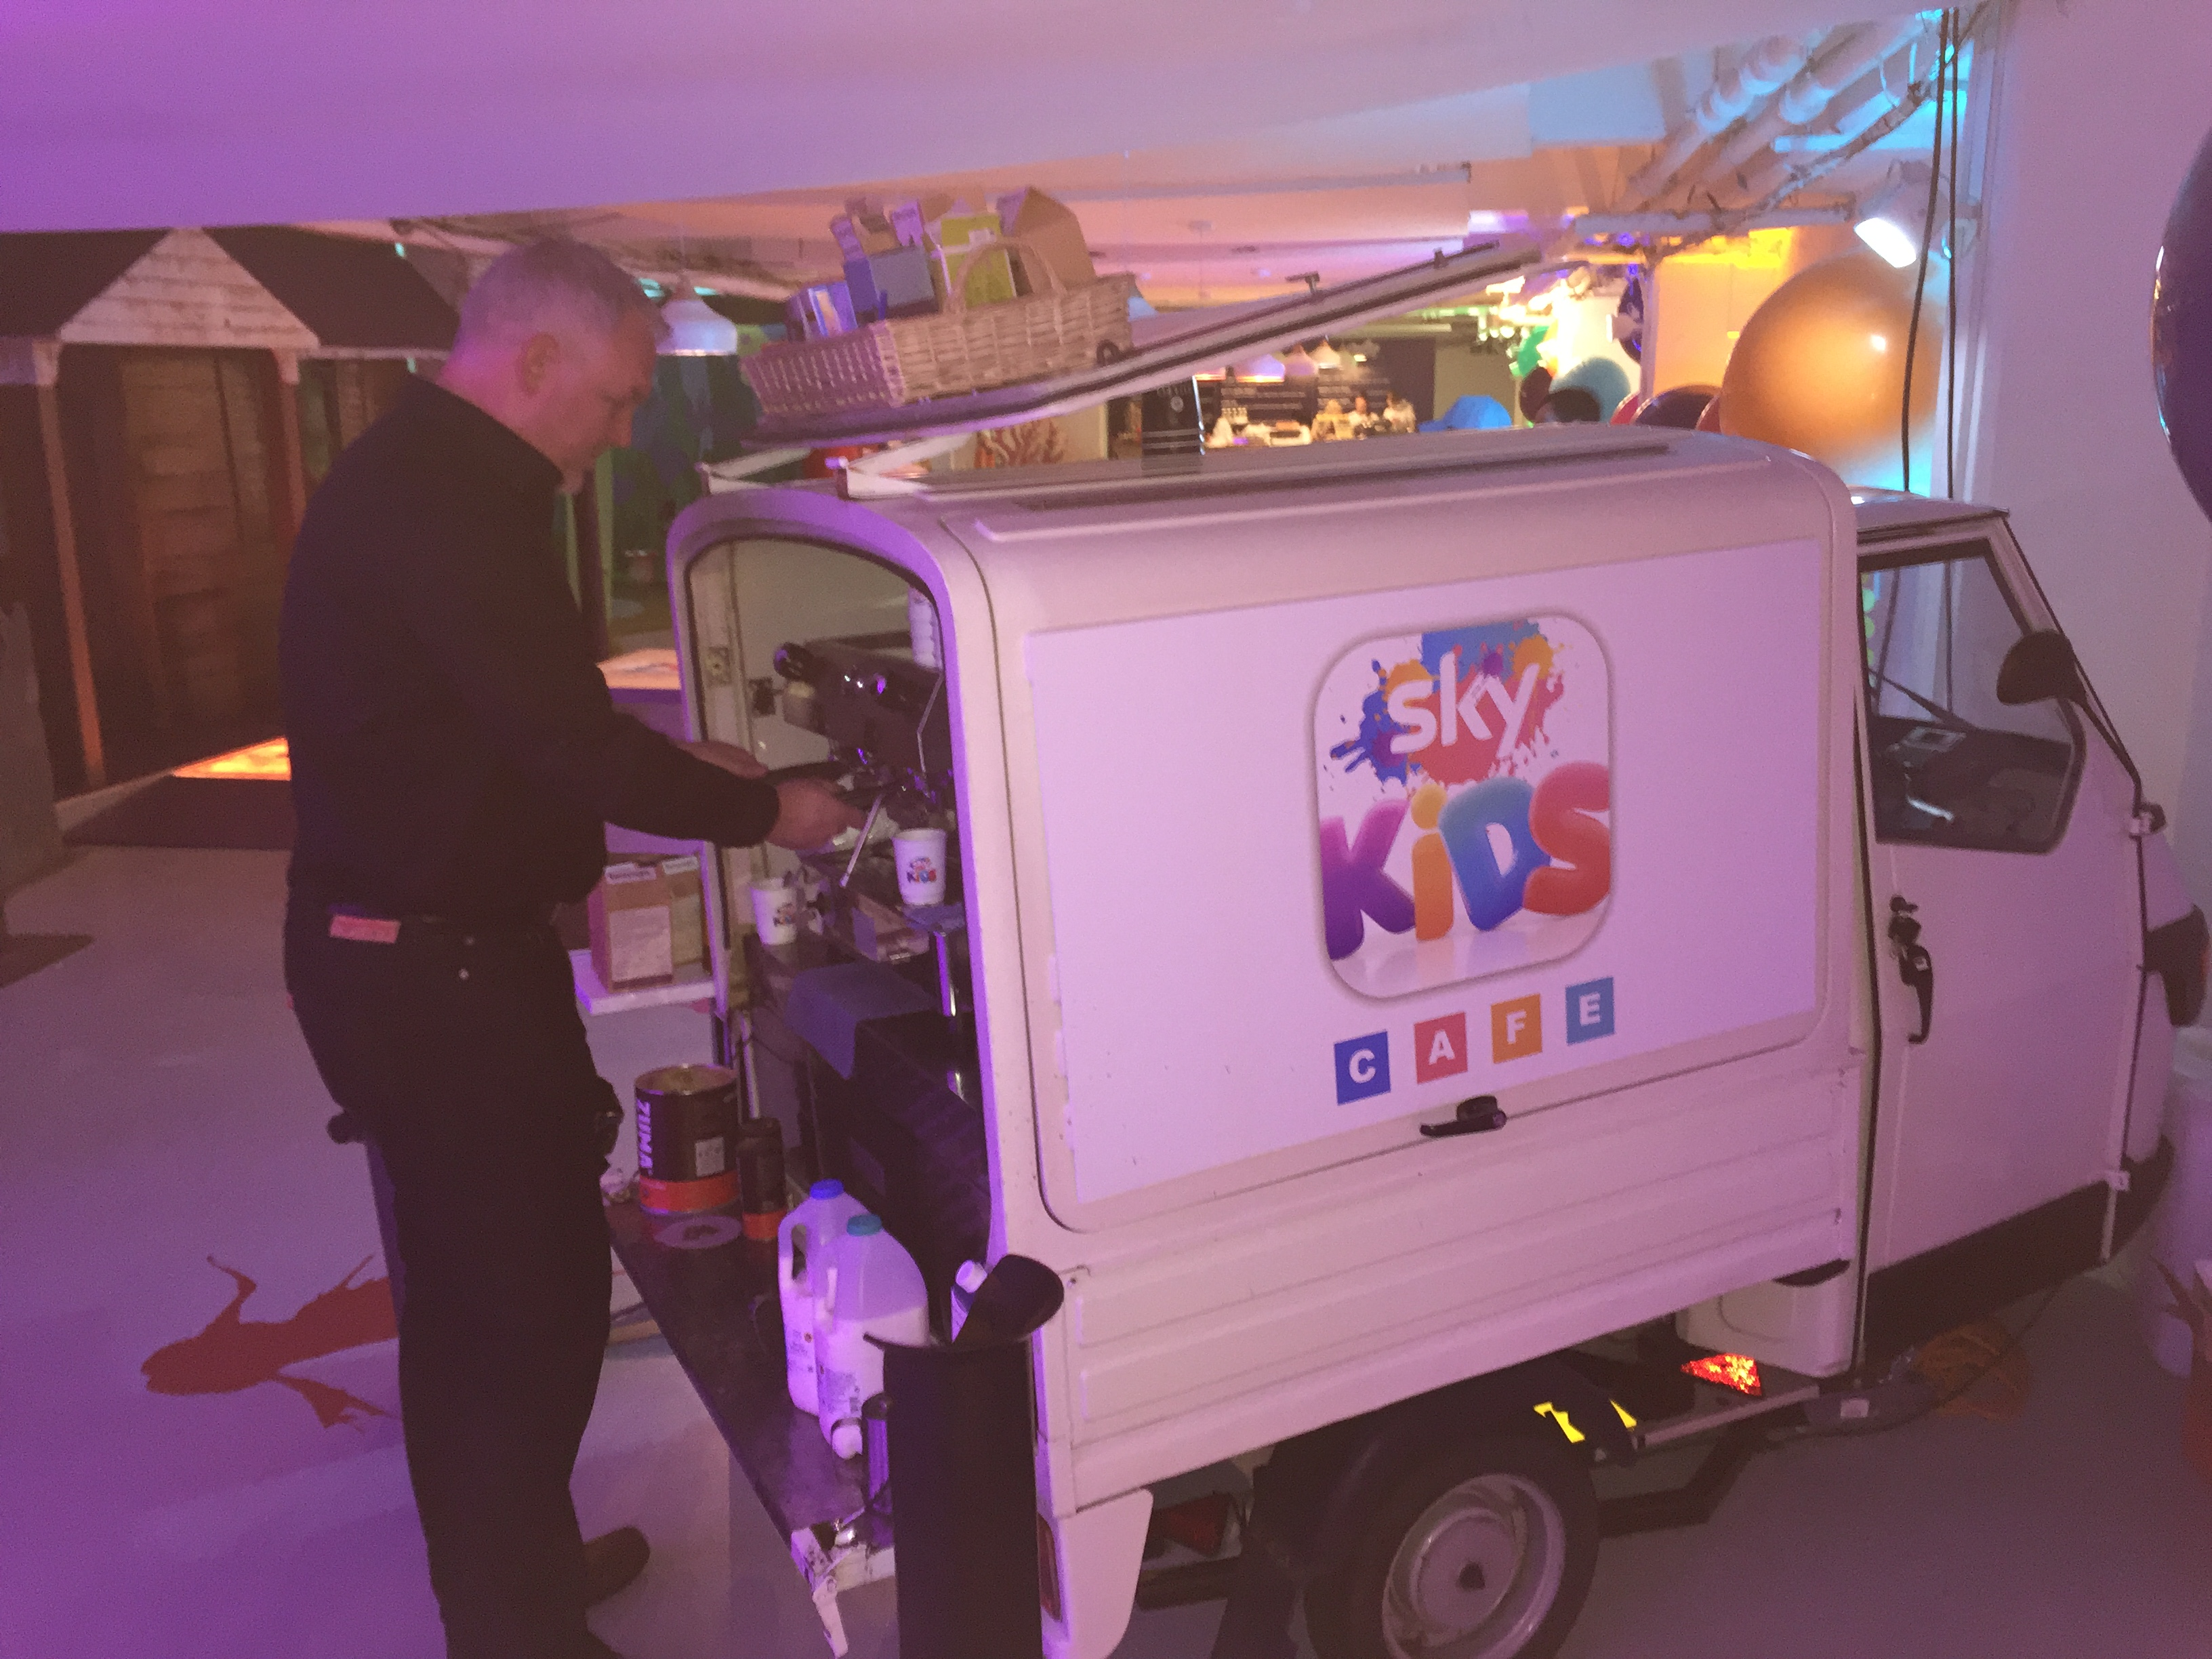 The Mobile Coffee Bean corporate branded mobile coffee van hire for Sky Kids Cafe